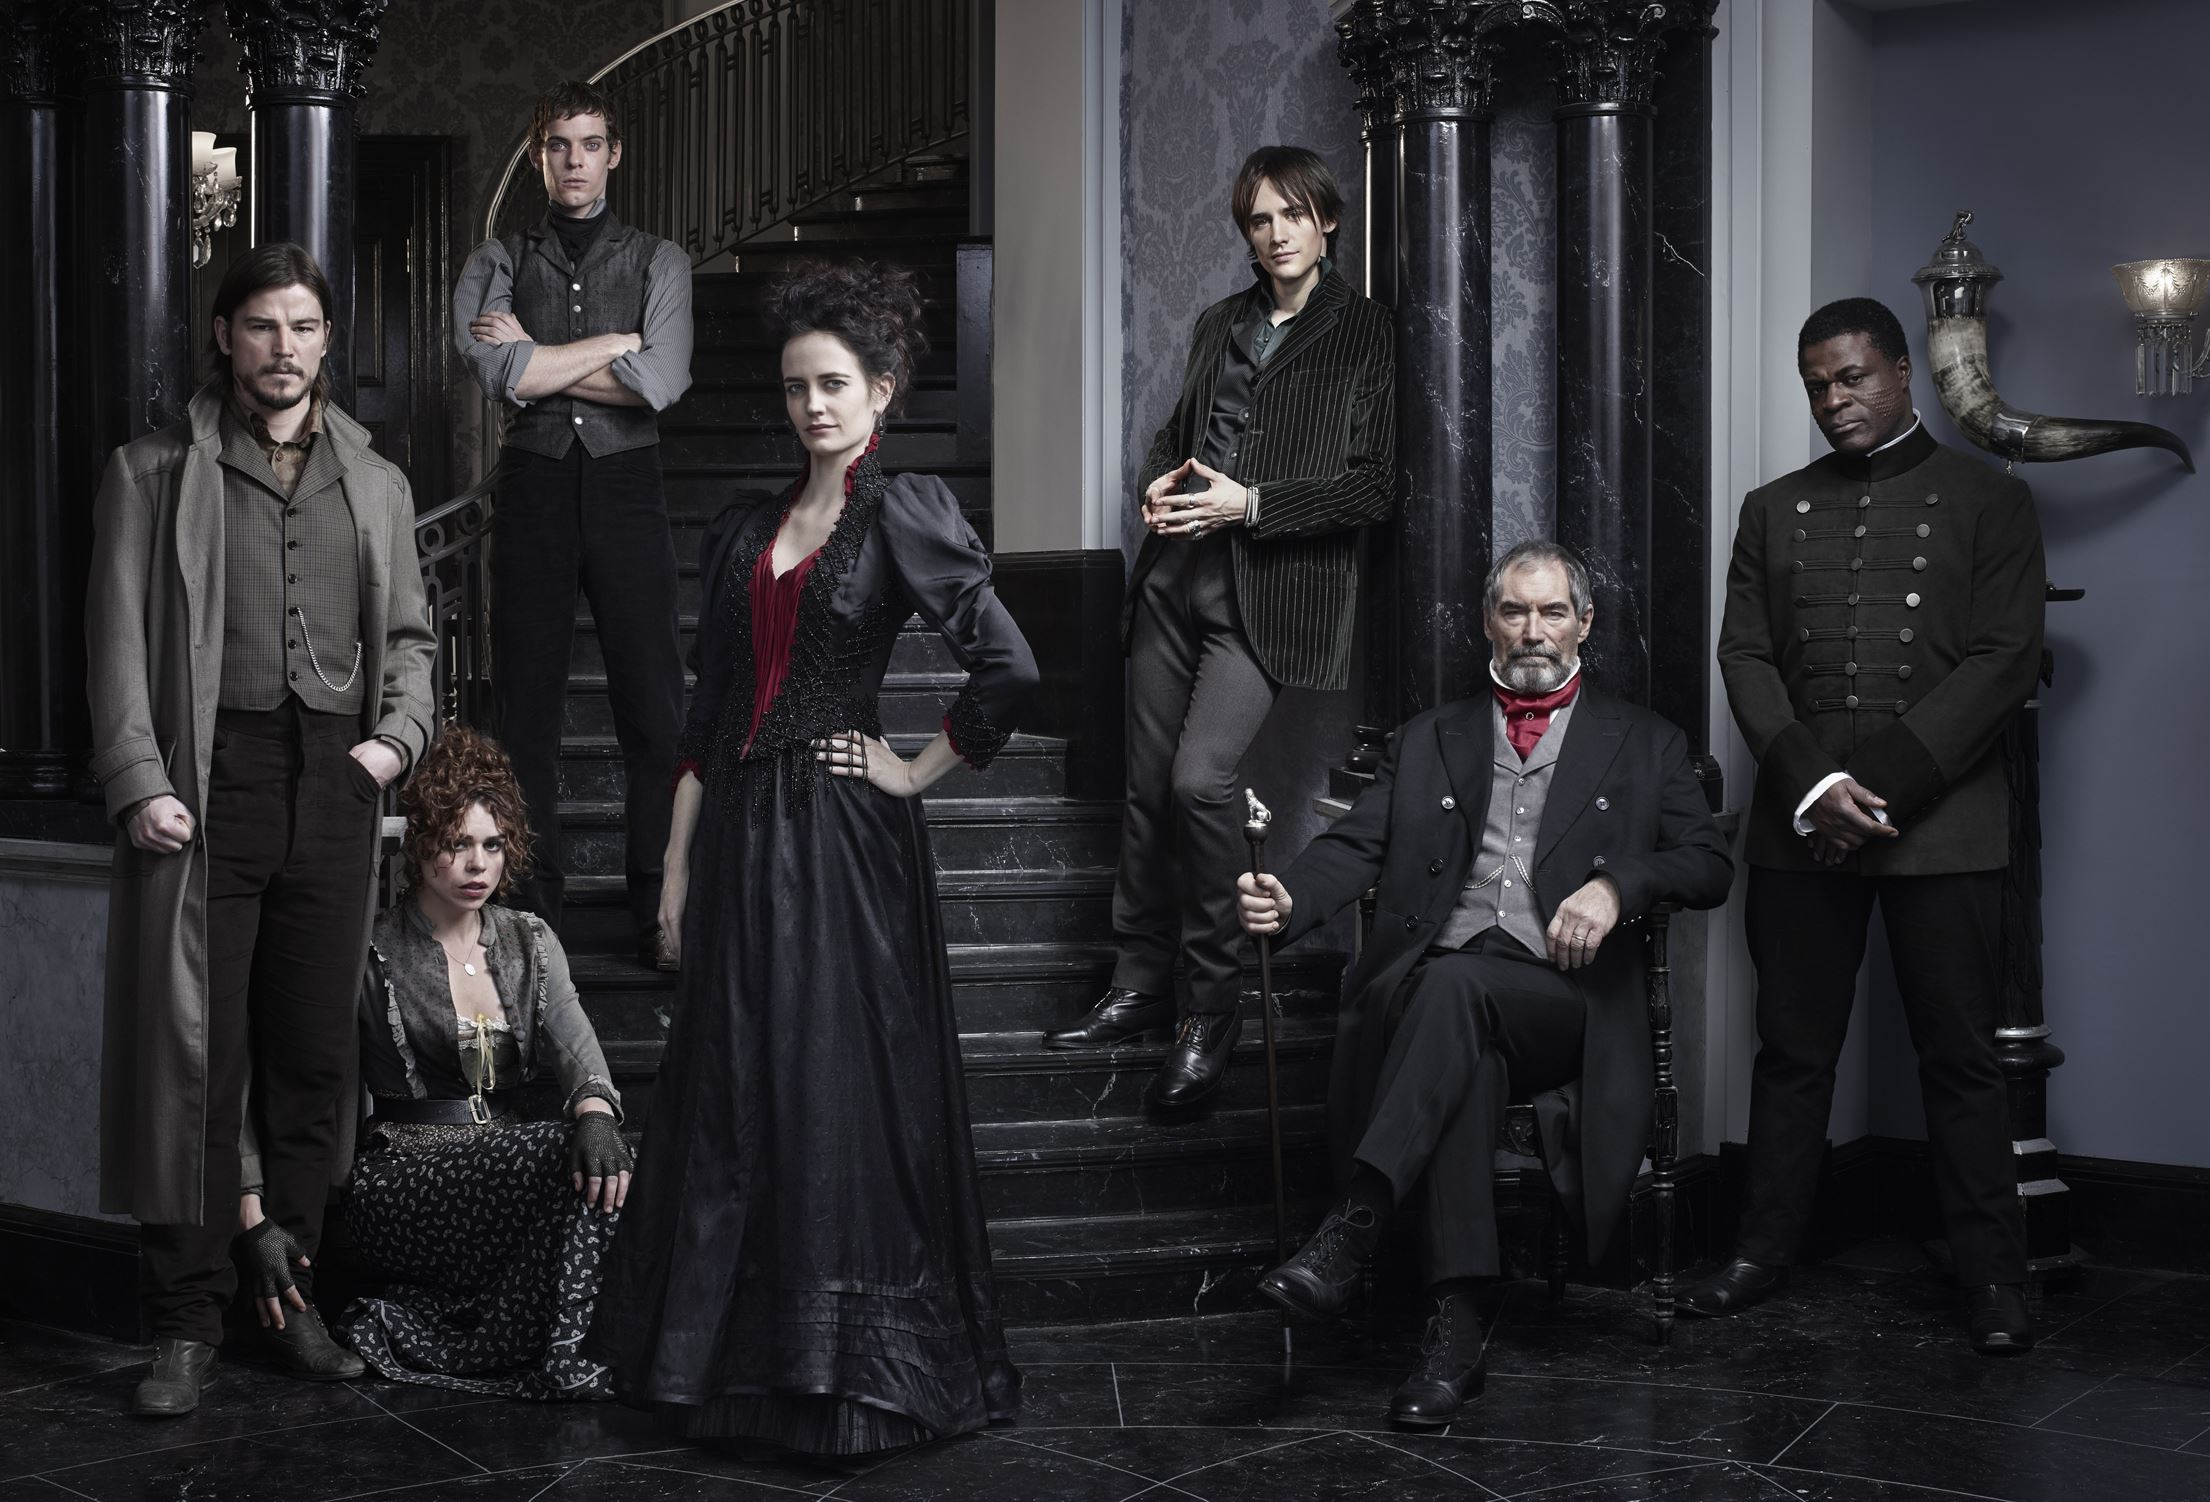 20140509hopennydreadful2 1 the cast of penny dreadful from left